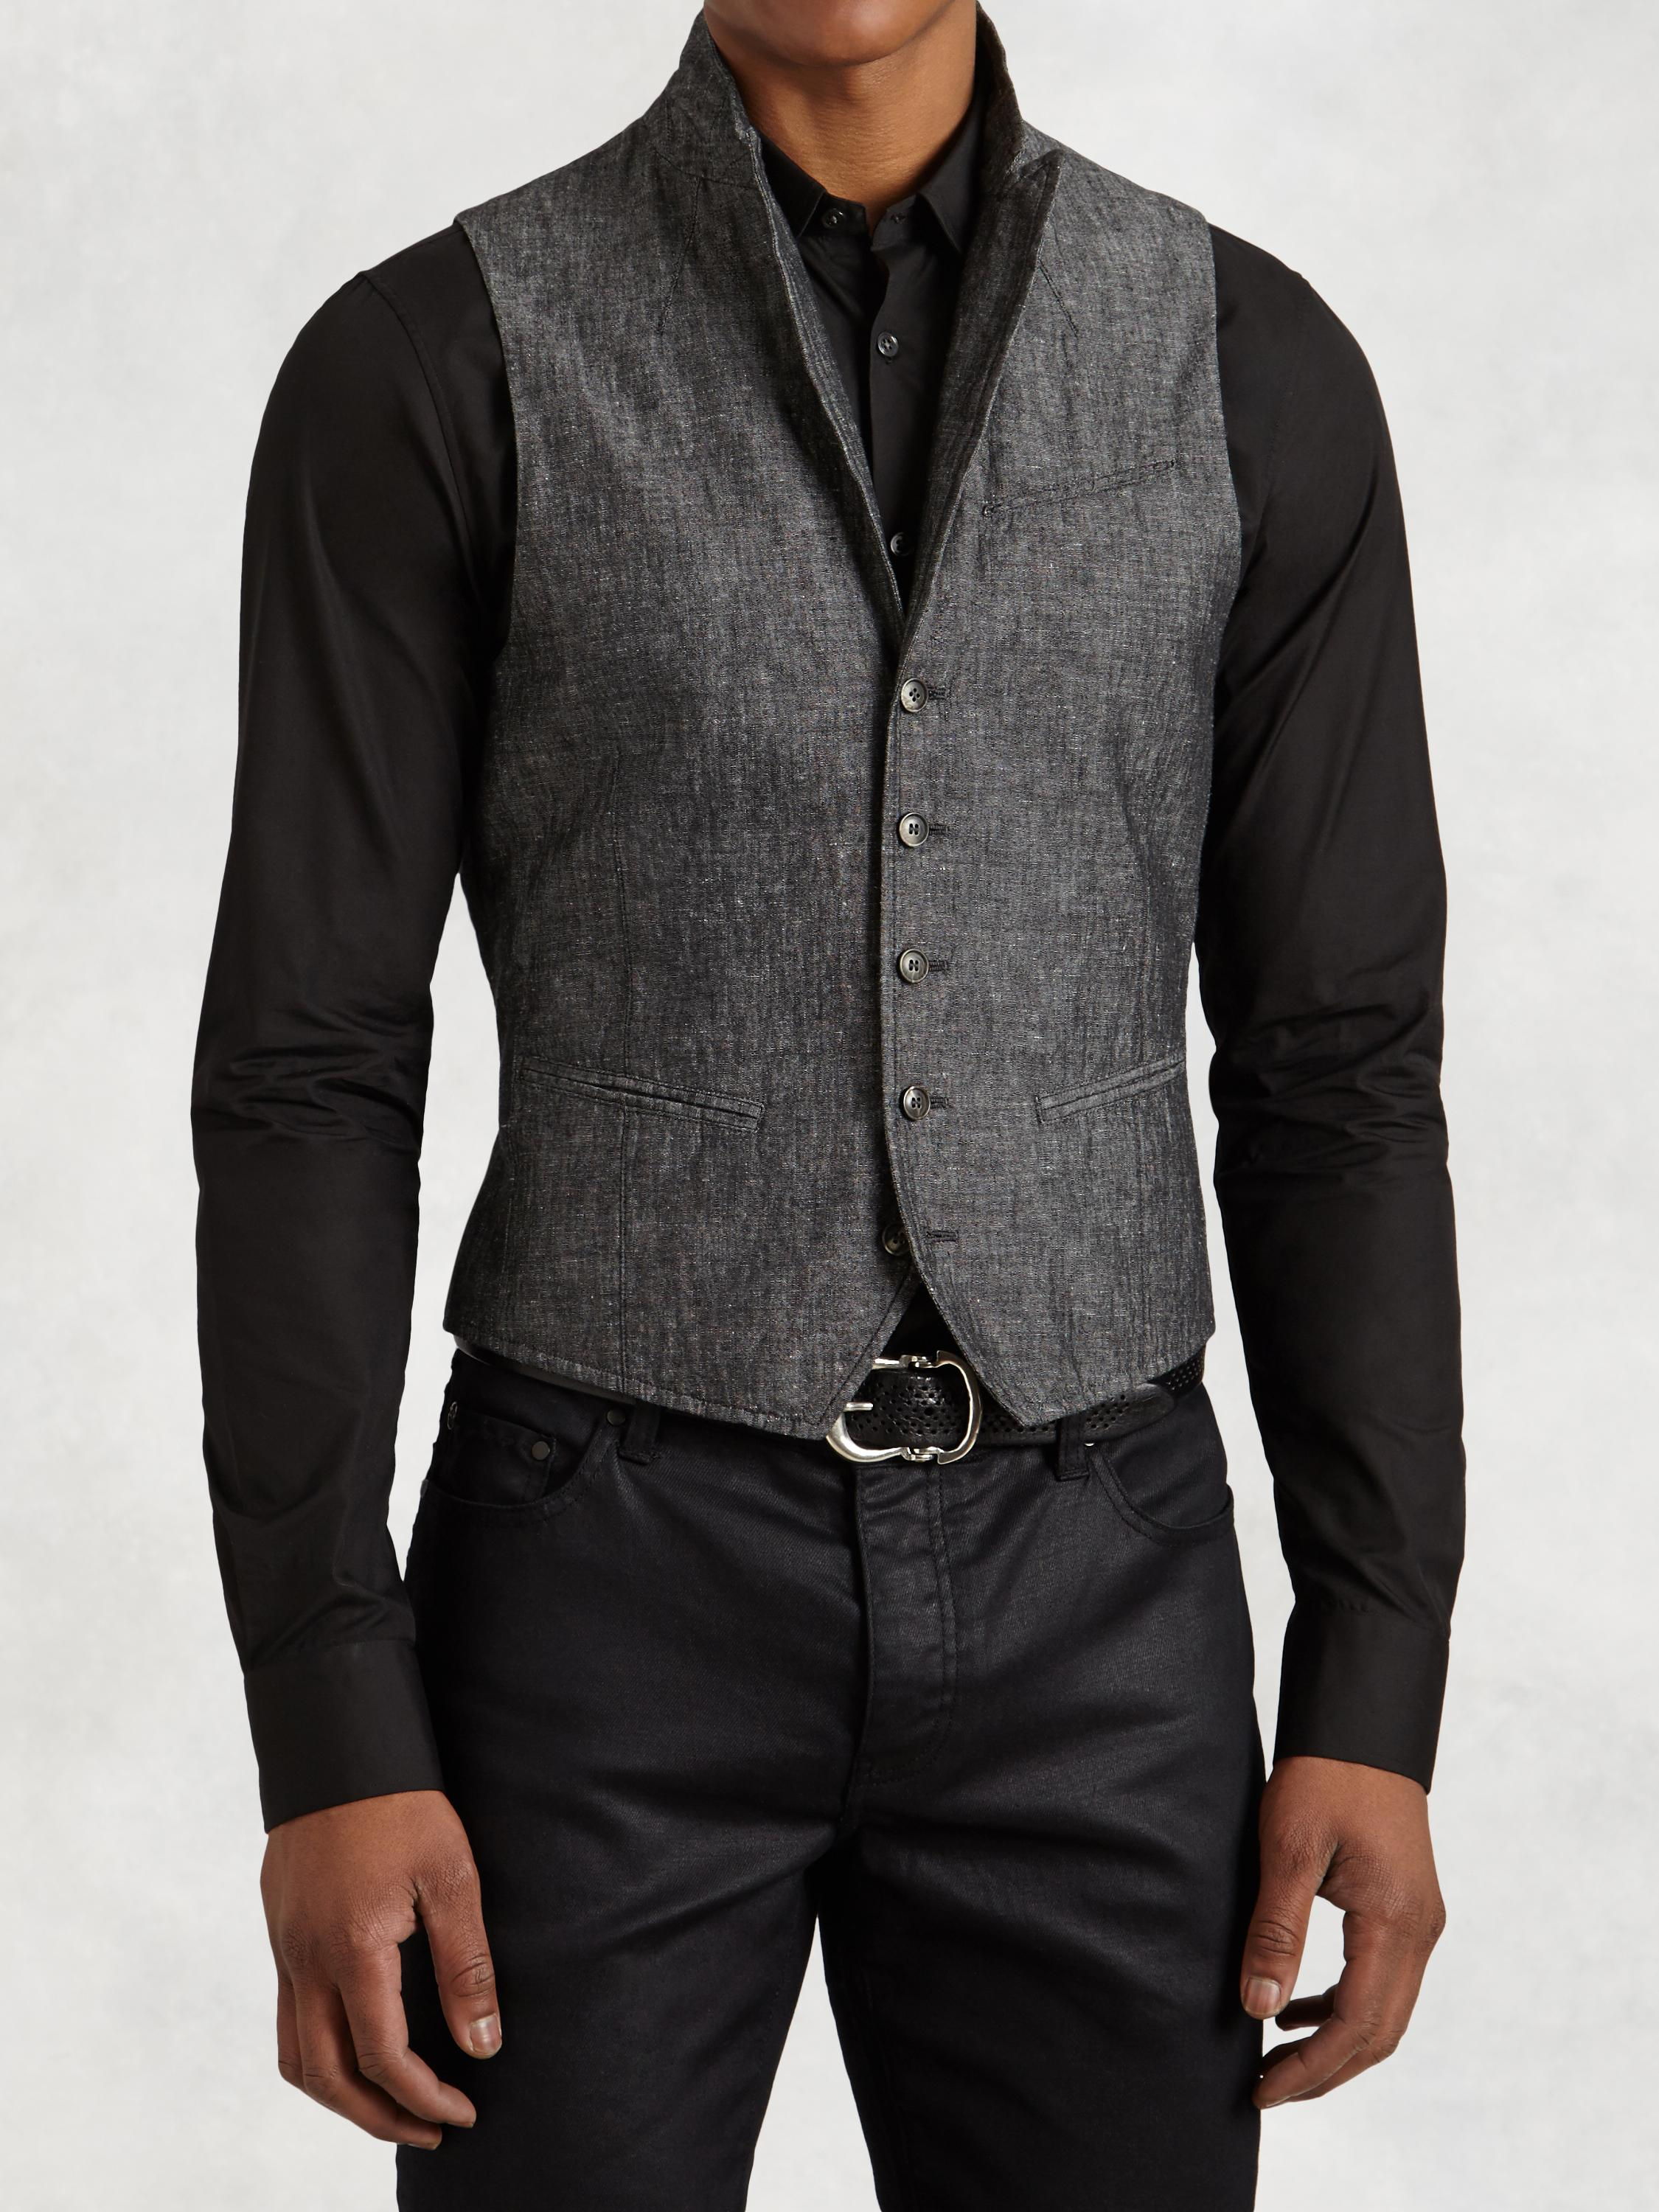 Cotton Linen Wire Collar Vest